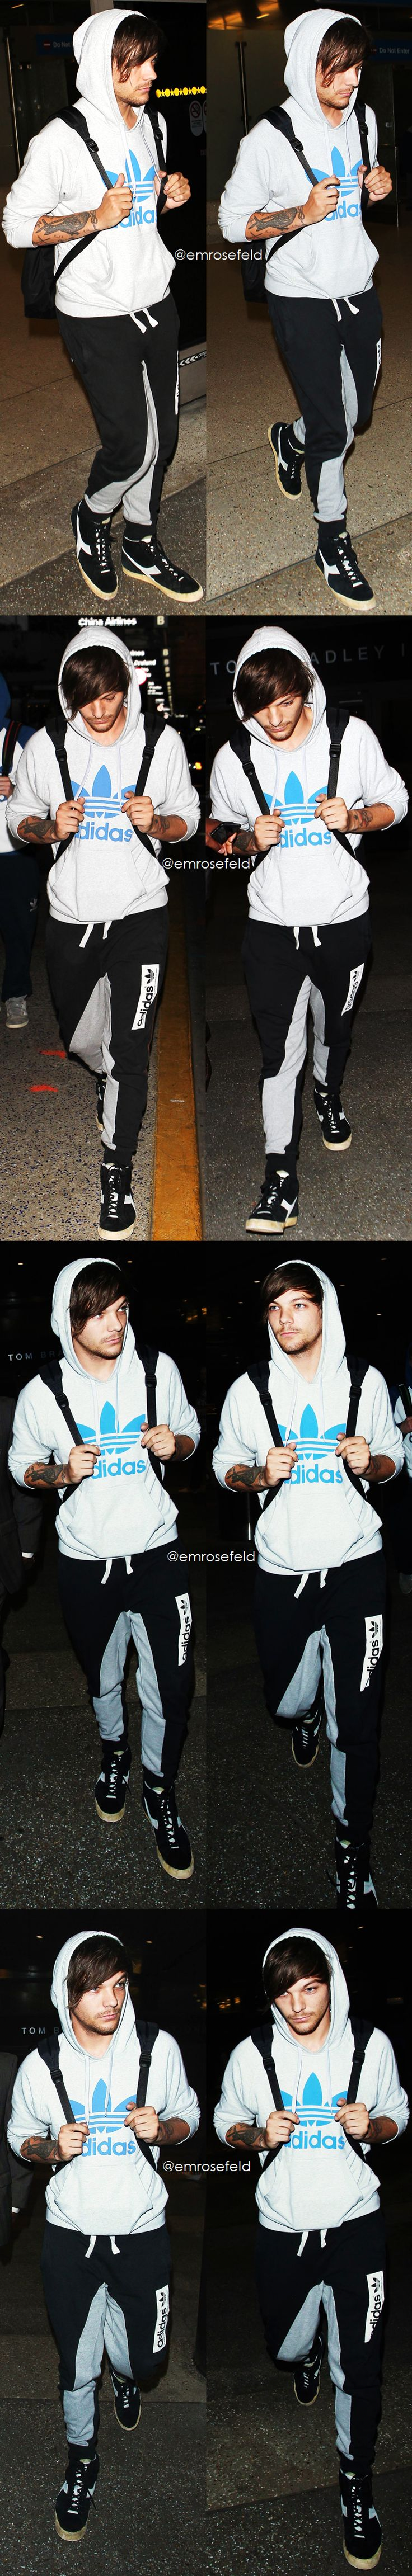 Louis Tomlinson | arriving at LAX 6.2.15